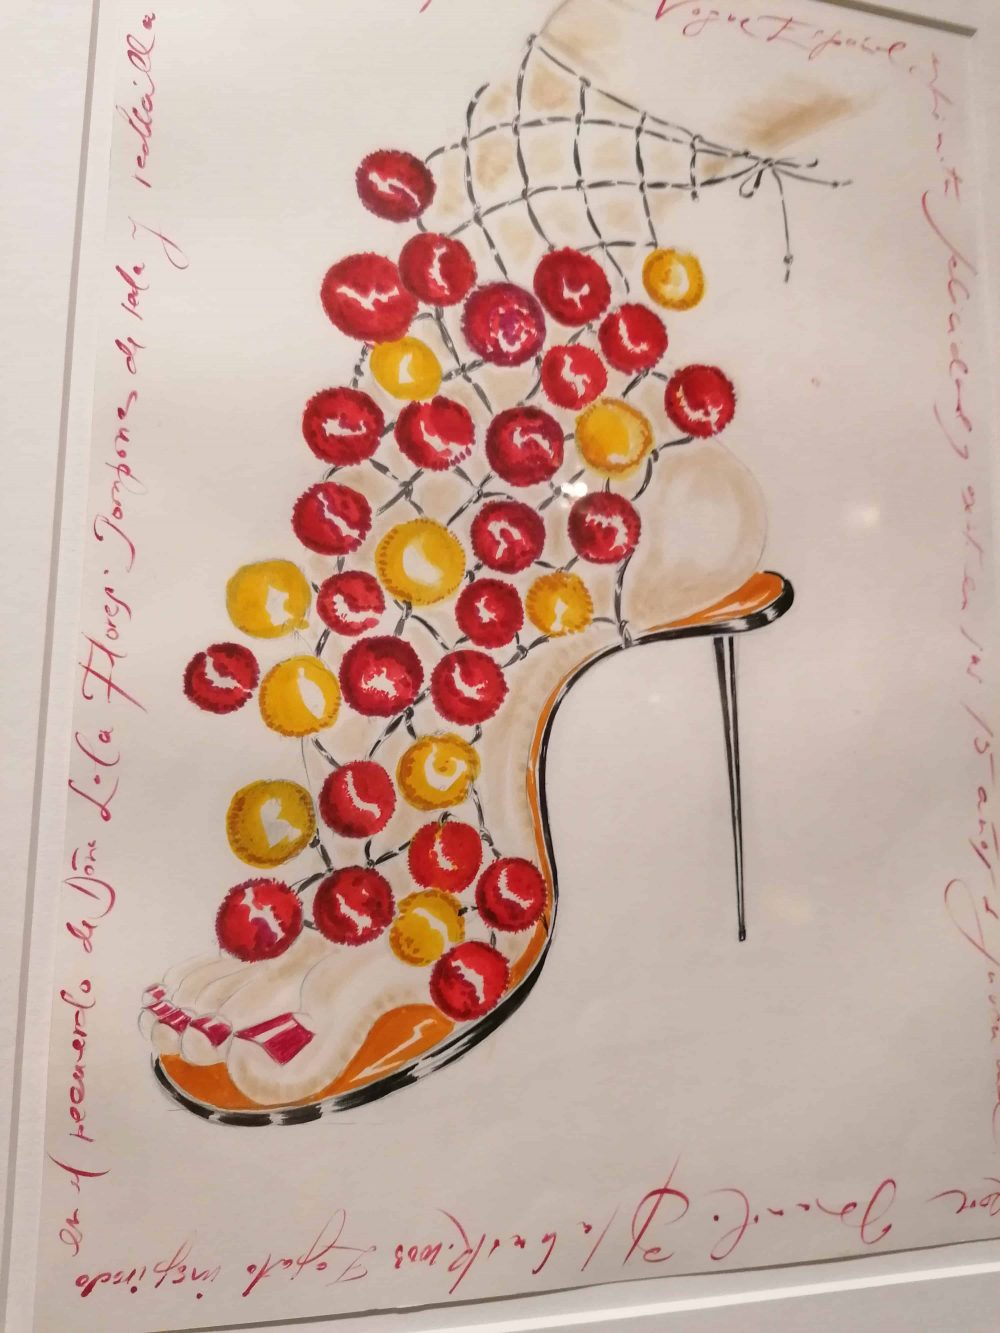 drawing by fashion designer Manolo Blahnik, on display at Wallace Collection; Blahnik shop in Burlington Arcade, Mayfair, Unique Boutiques Tour, Fashion Tours London, fashion walks and shopping tours for fashionistas